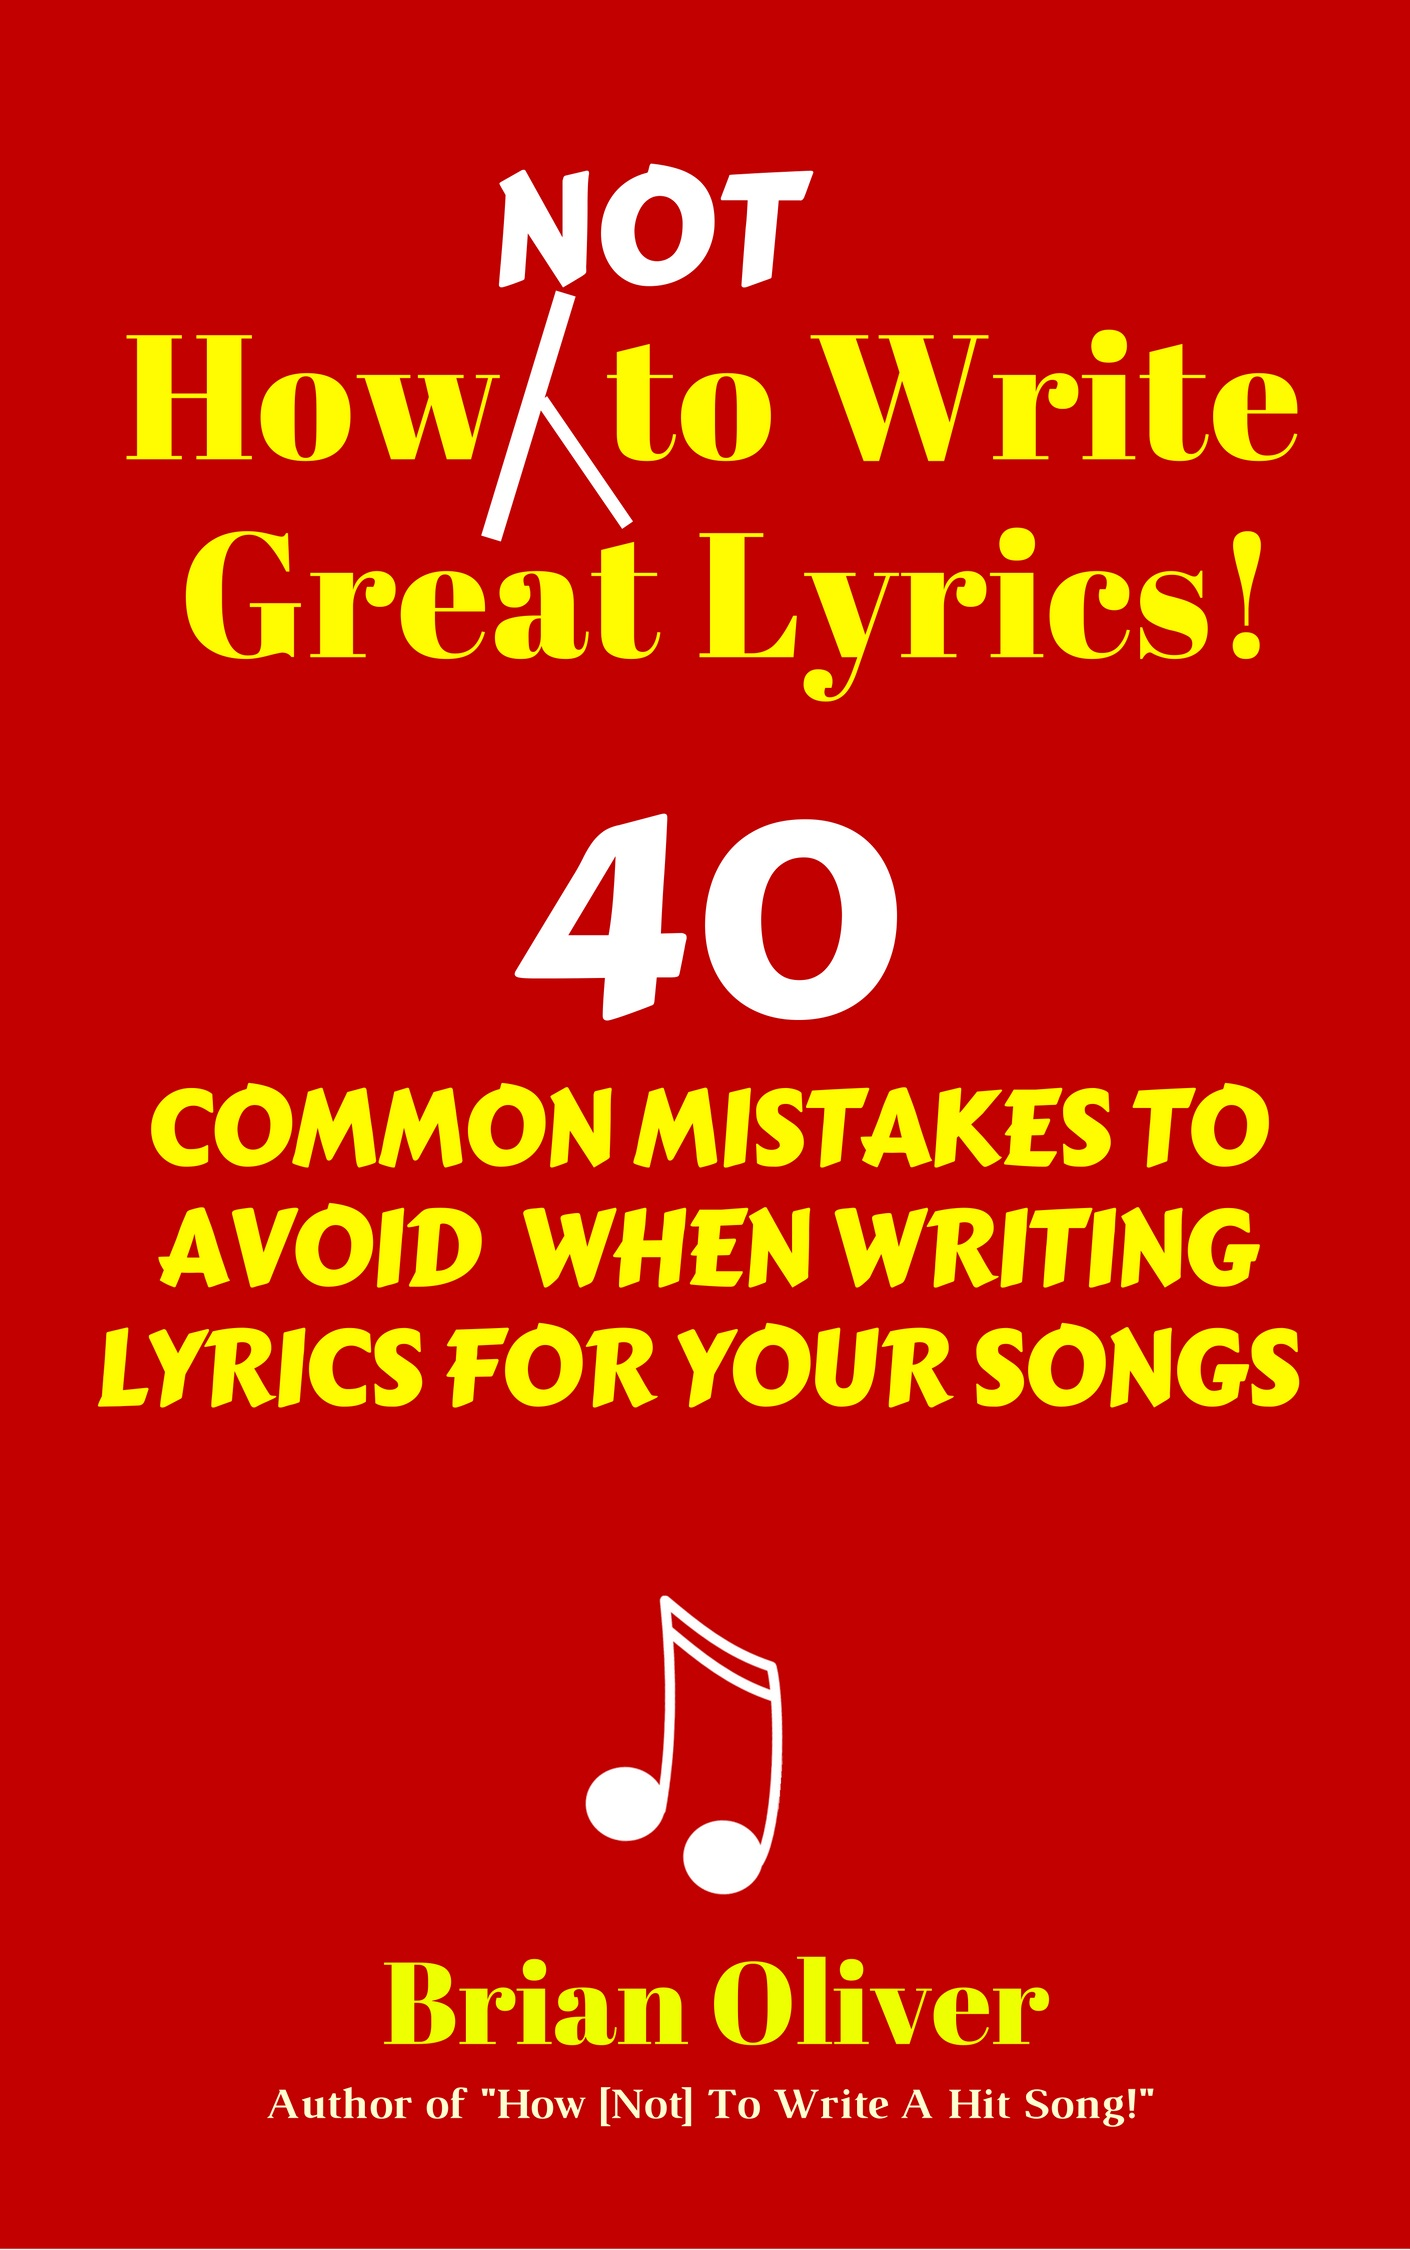 HOW (NOT) TO WRITE GREAT LYRICS! 40 COMMON MISTAKES TO AVOID